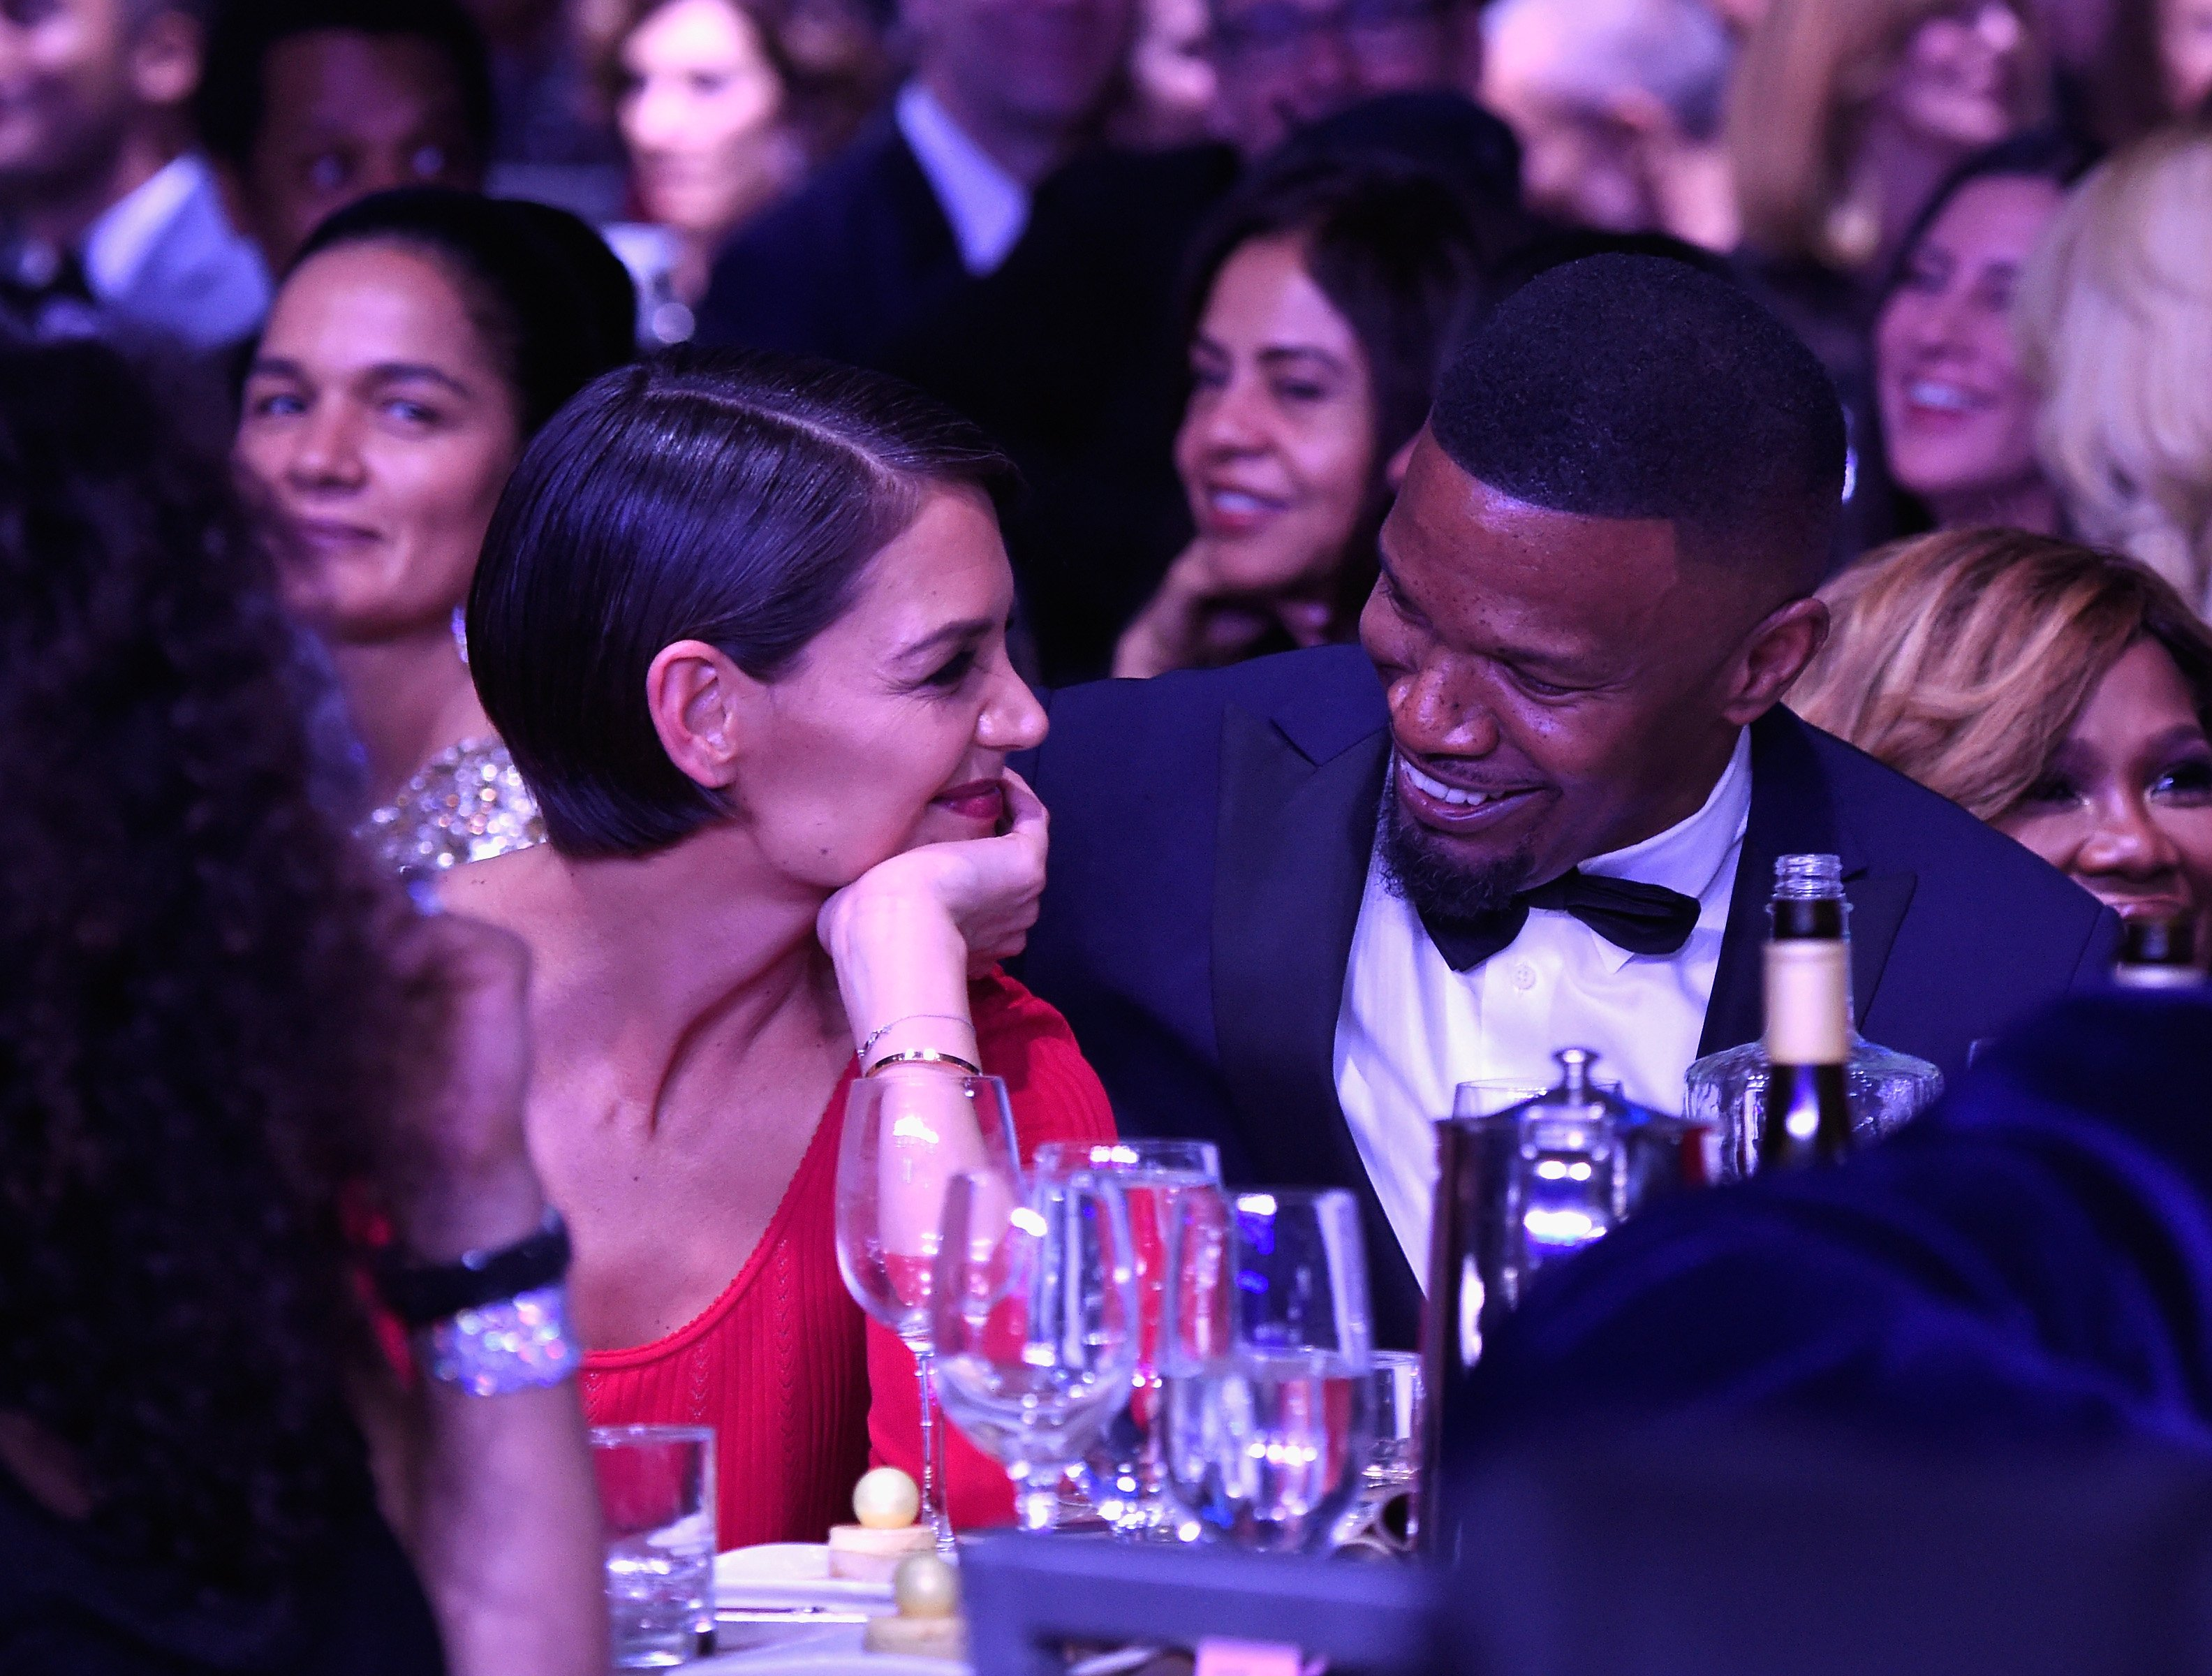 Katie Holmes and Jamie Foxx attend the Clive Davis and Recording Academy Pre-GRAMMY Gala and GRAMMY Salute to Industry Icons on January 27, 2018 in New York City. | Source: Getty Images